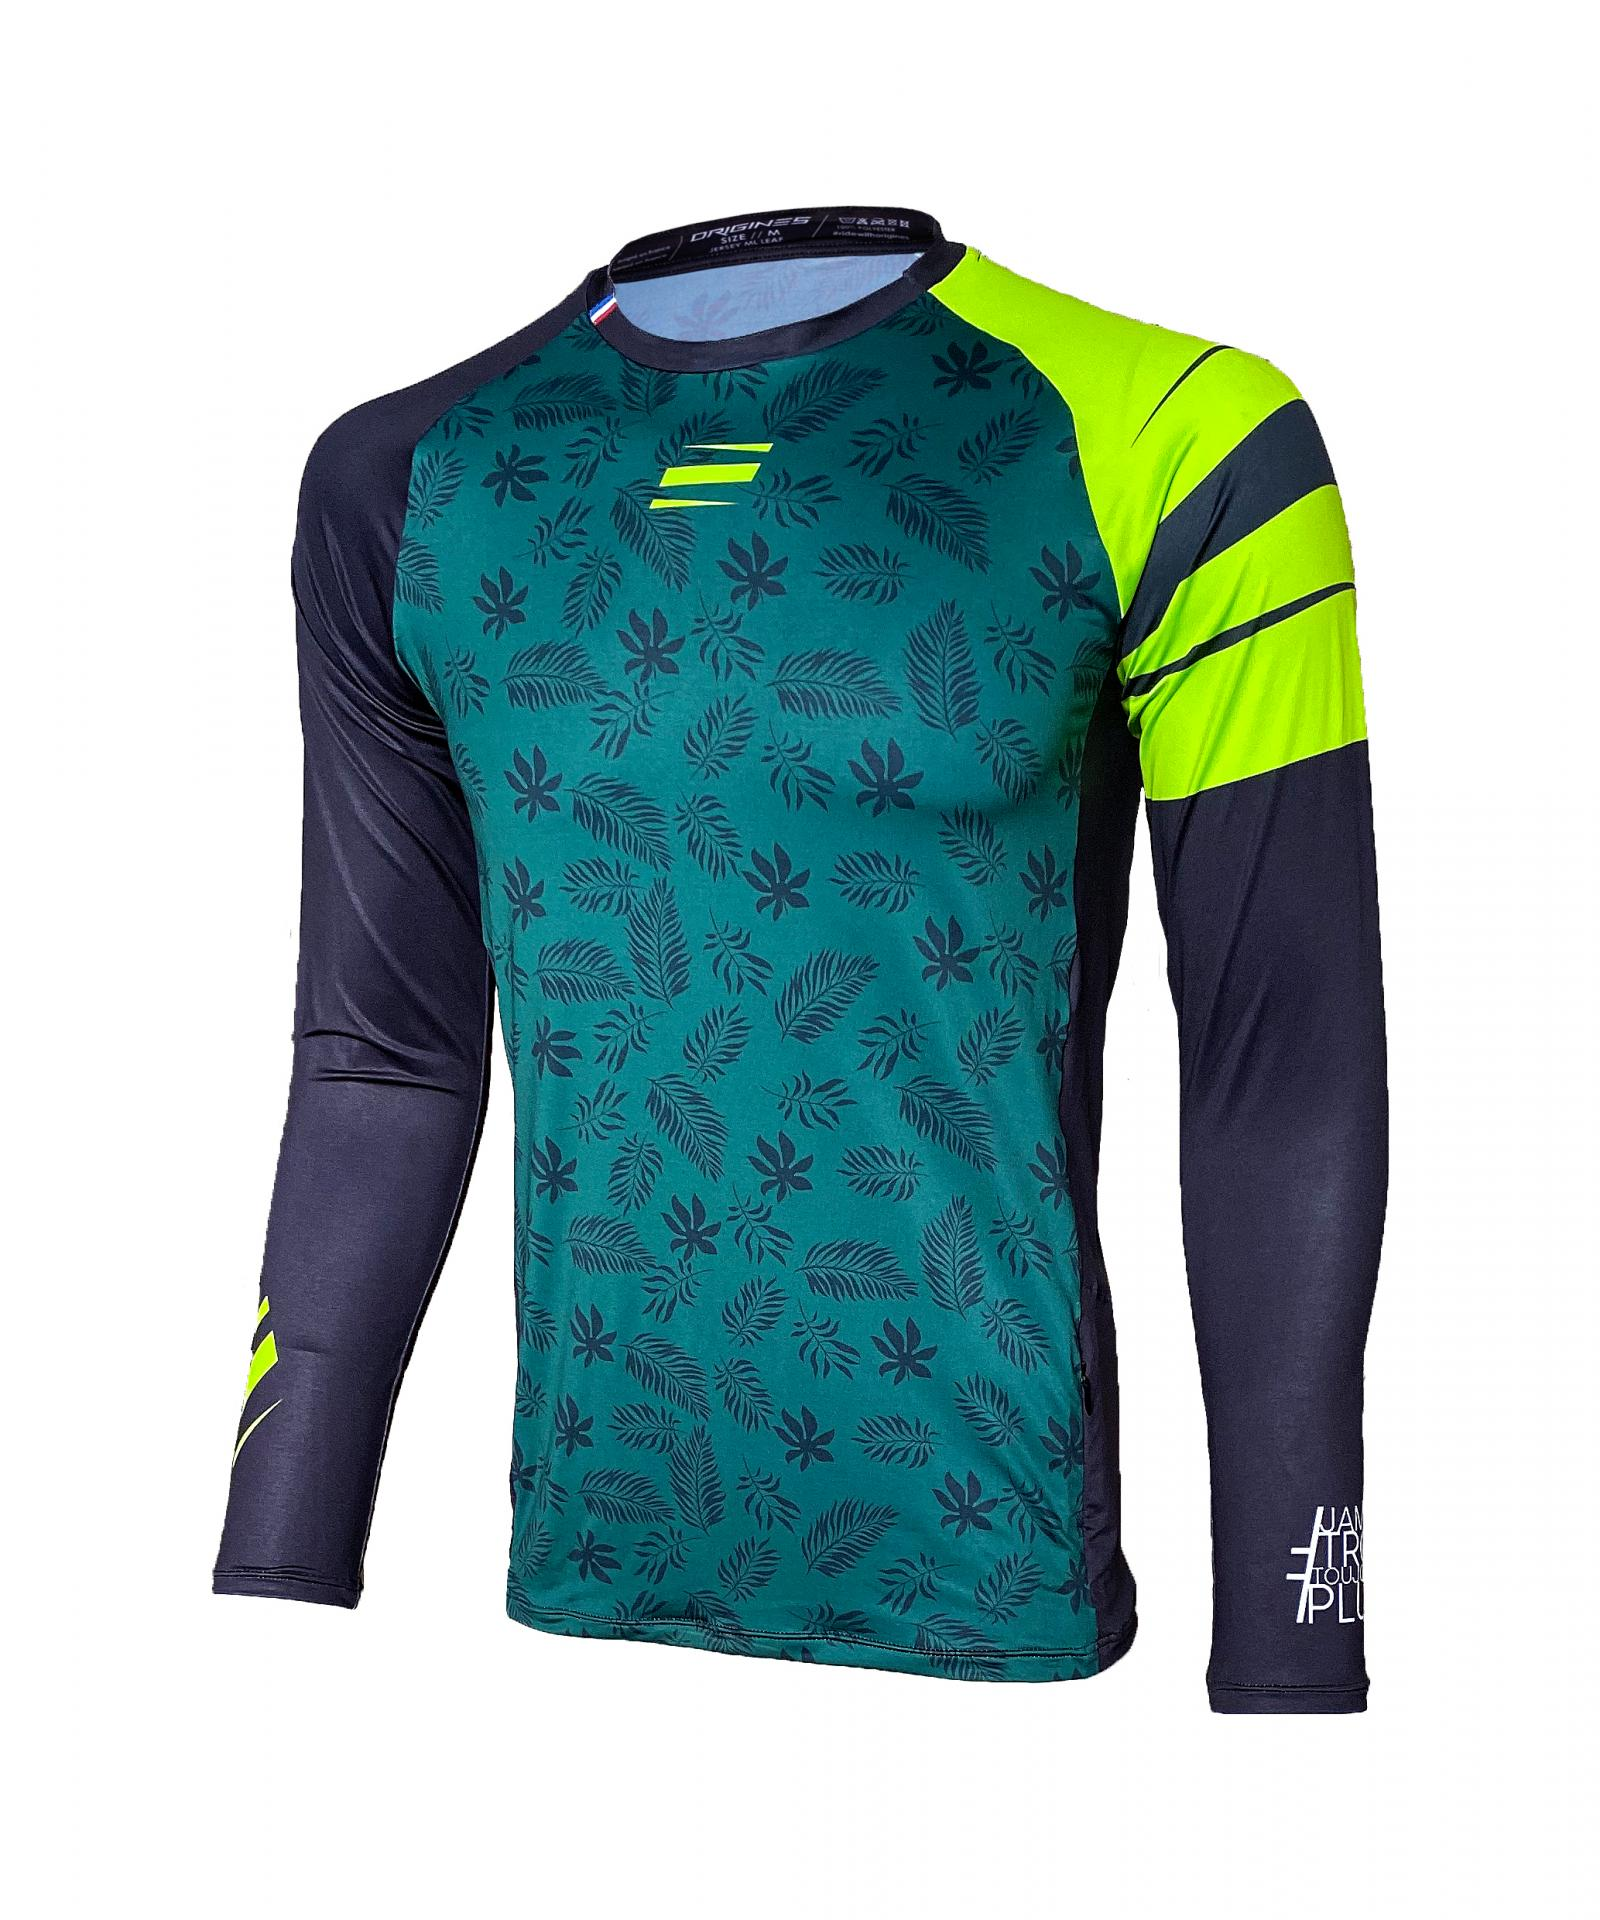 Jersey Origines Clothing Enduro Leaf